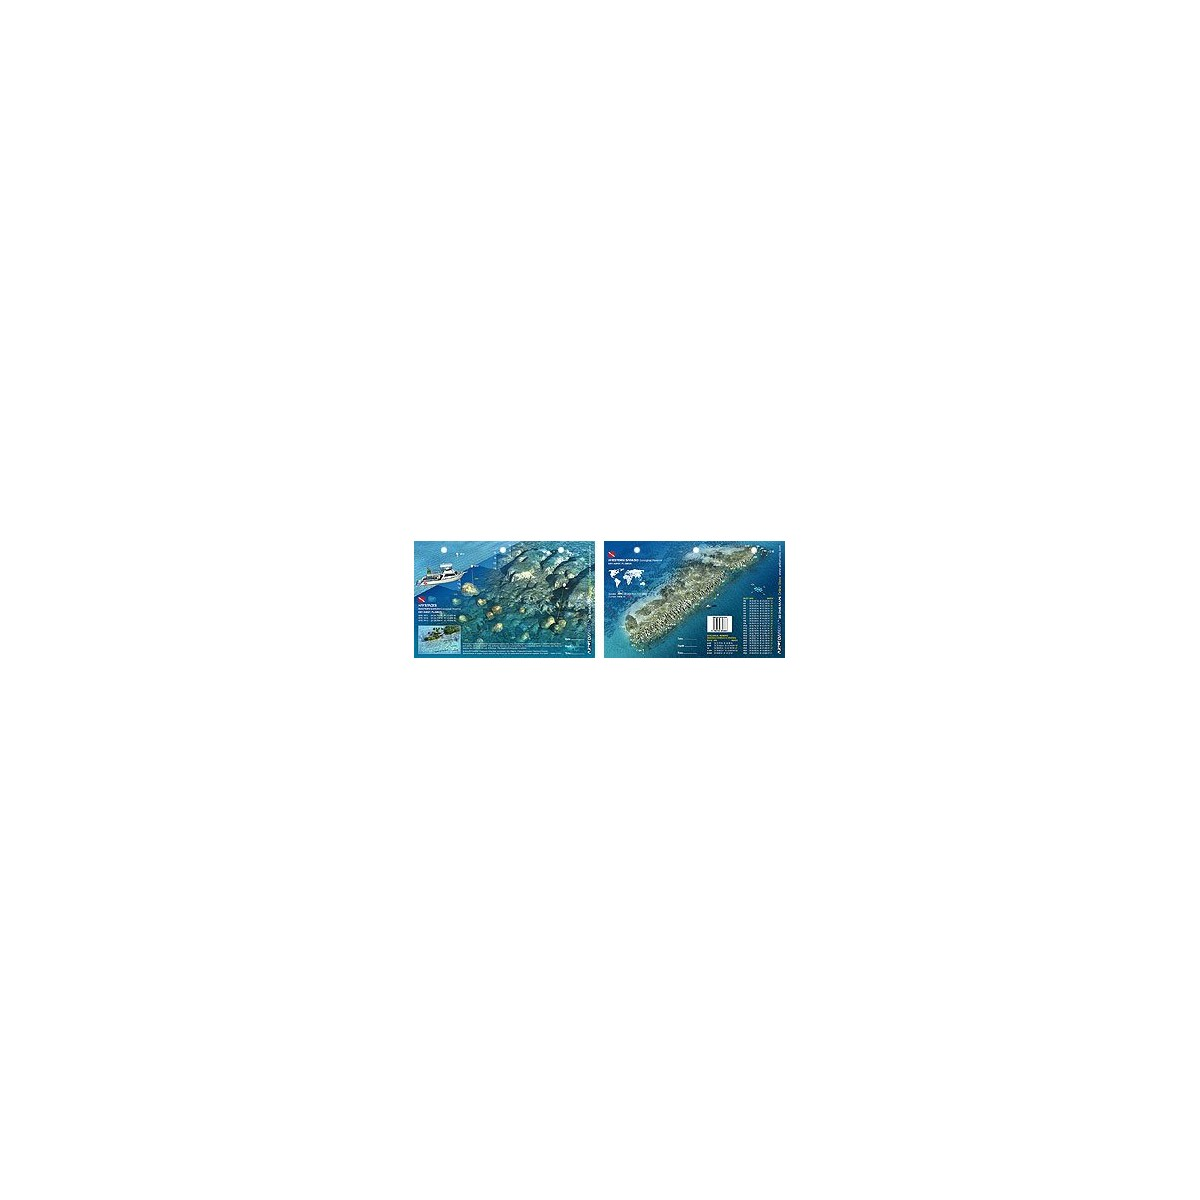 Wester Samboo in Key West, Florida (8.5 x 5.5 Inches) (21.6 x 15cm) - New Art to Media Underwater Waterproof 3D Dive Site Map